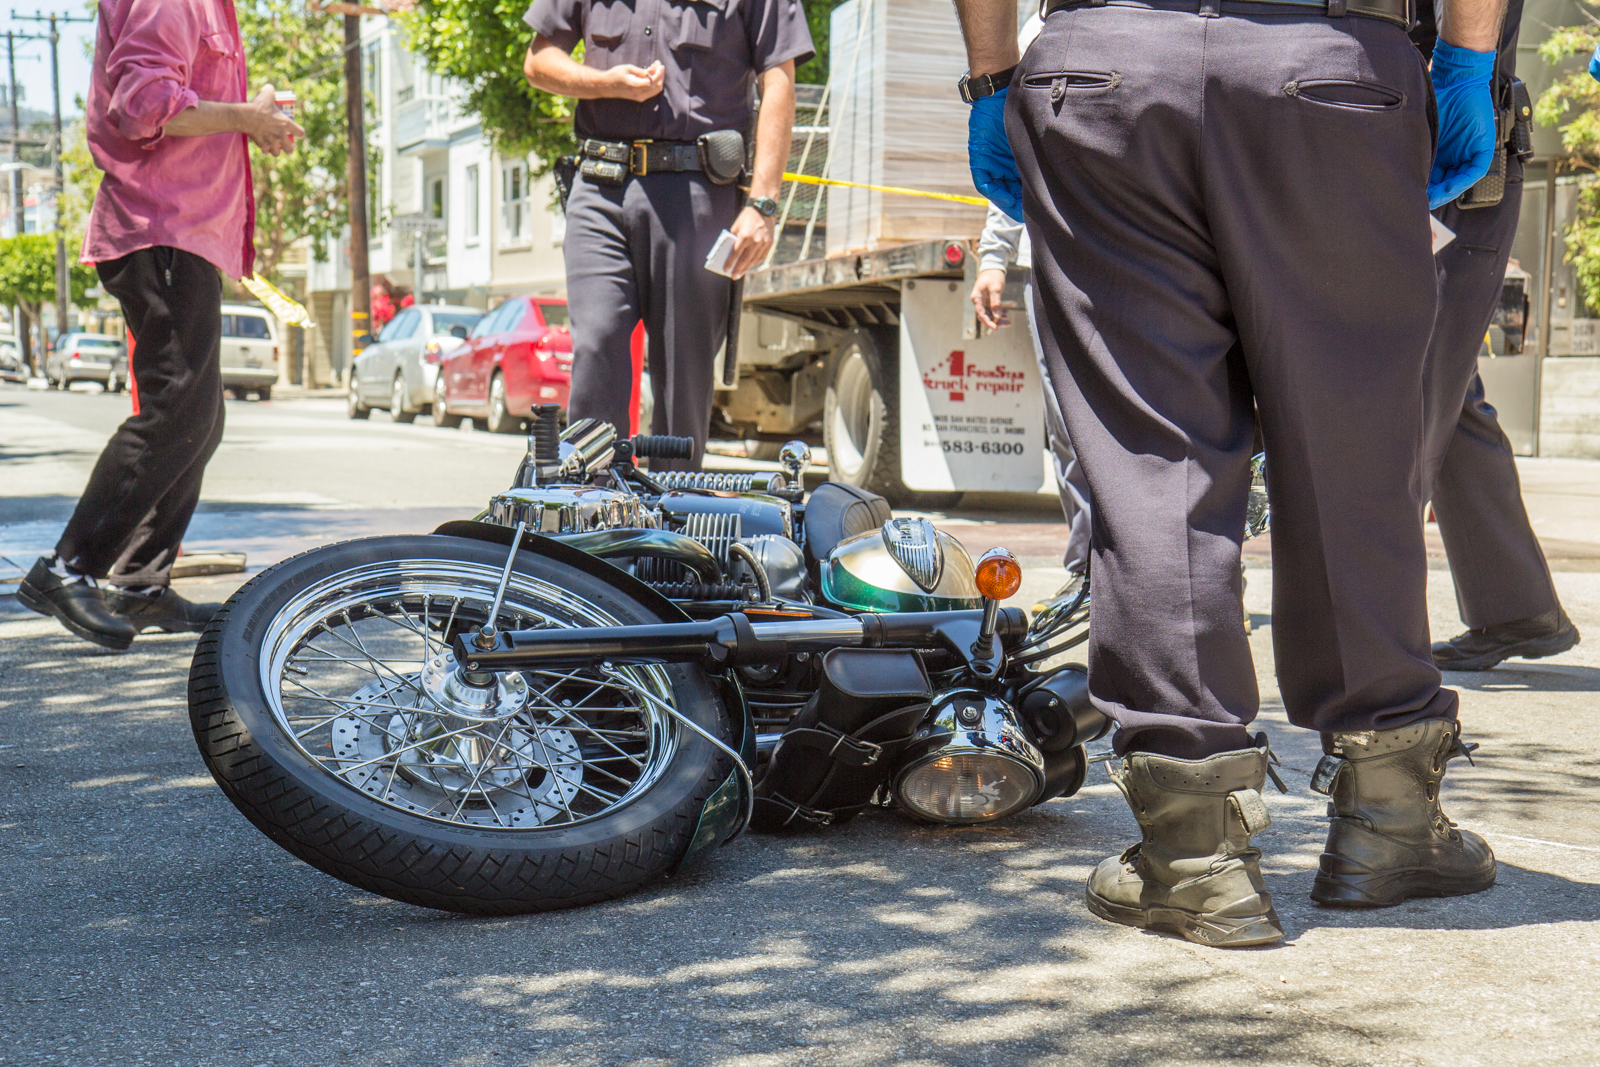 Motorcycle Accident on 19th Street